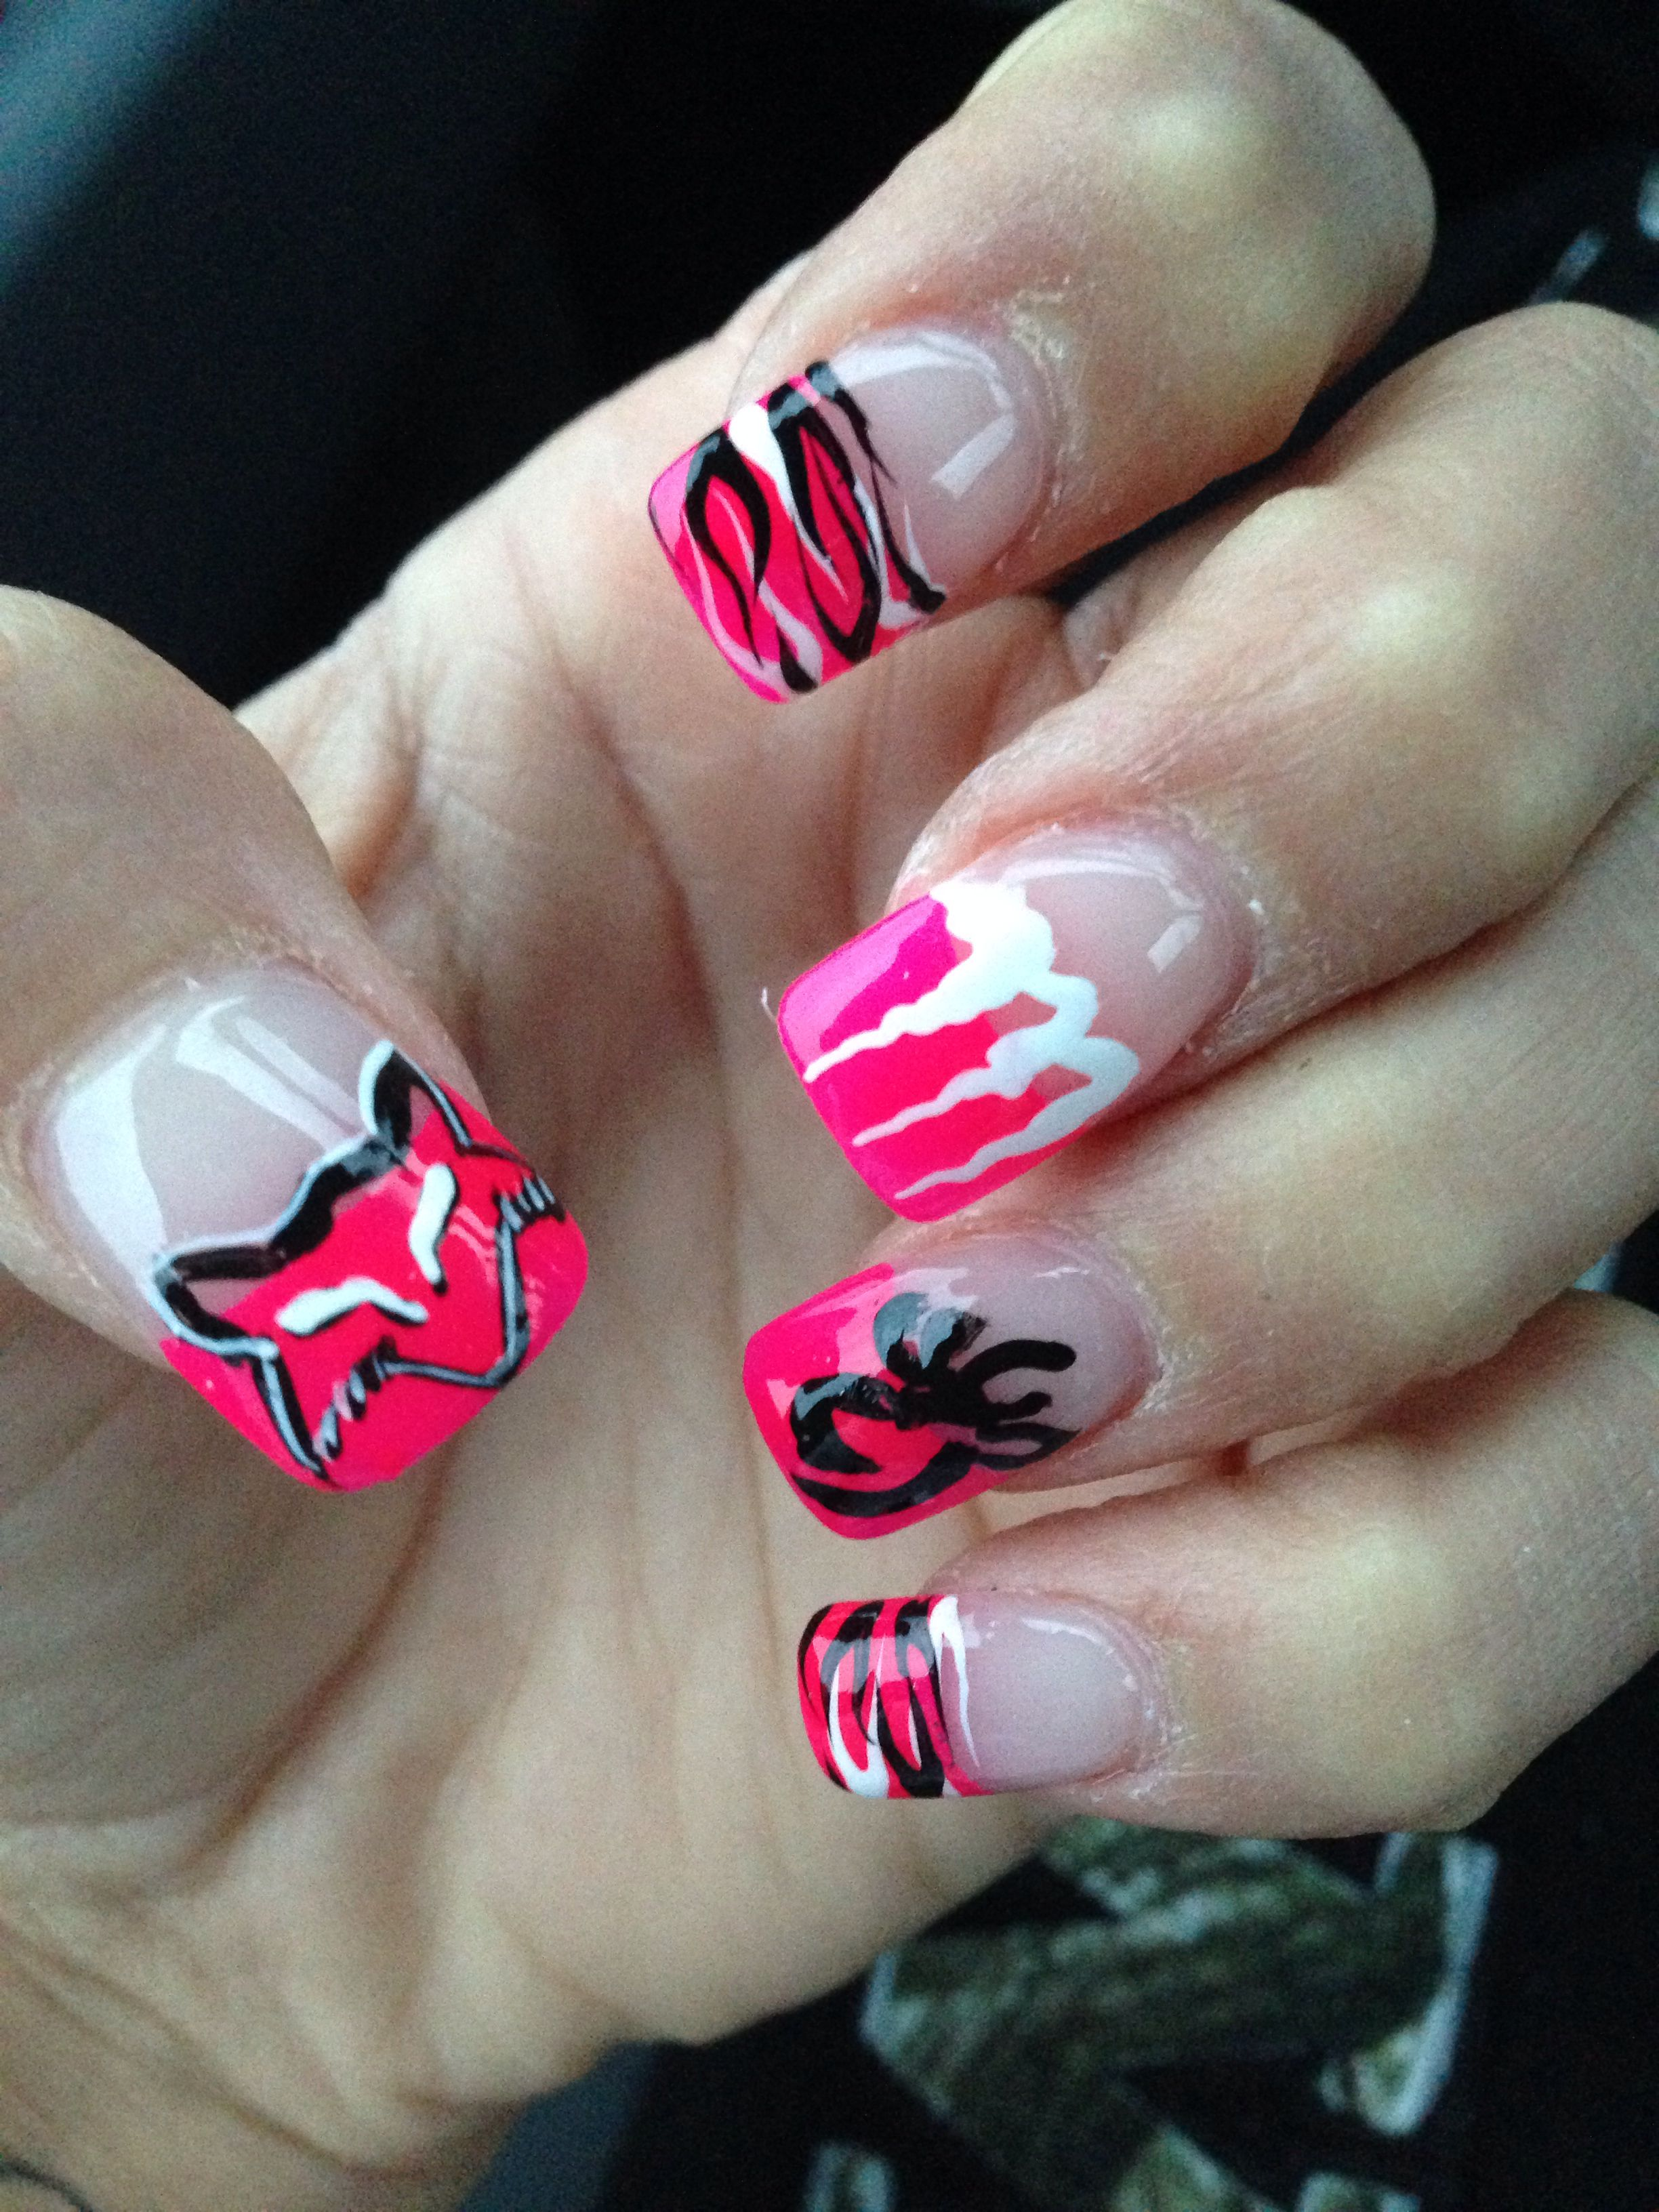 Nails done and I LOVE them <333 hair appointment Friday can\'t wait ...